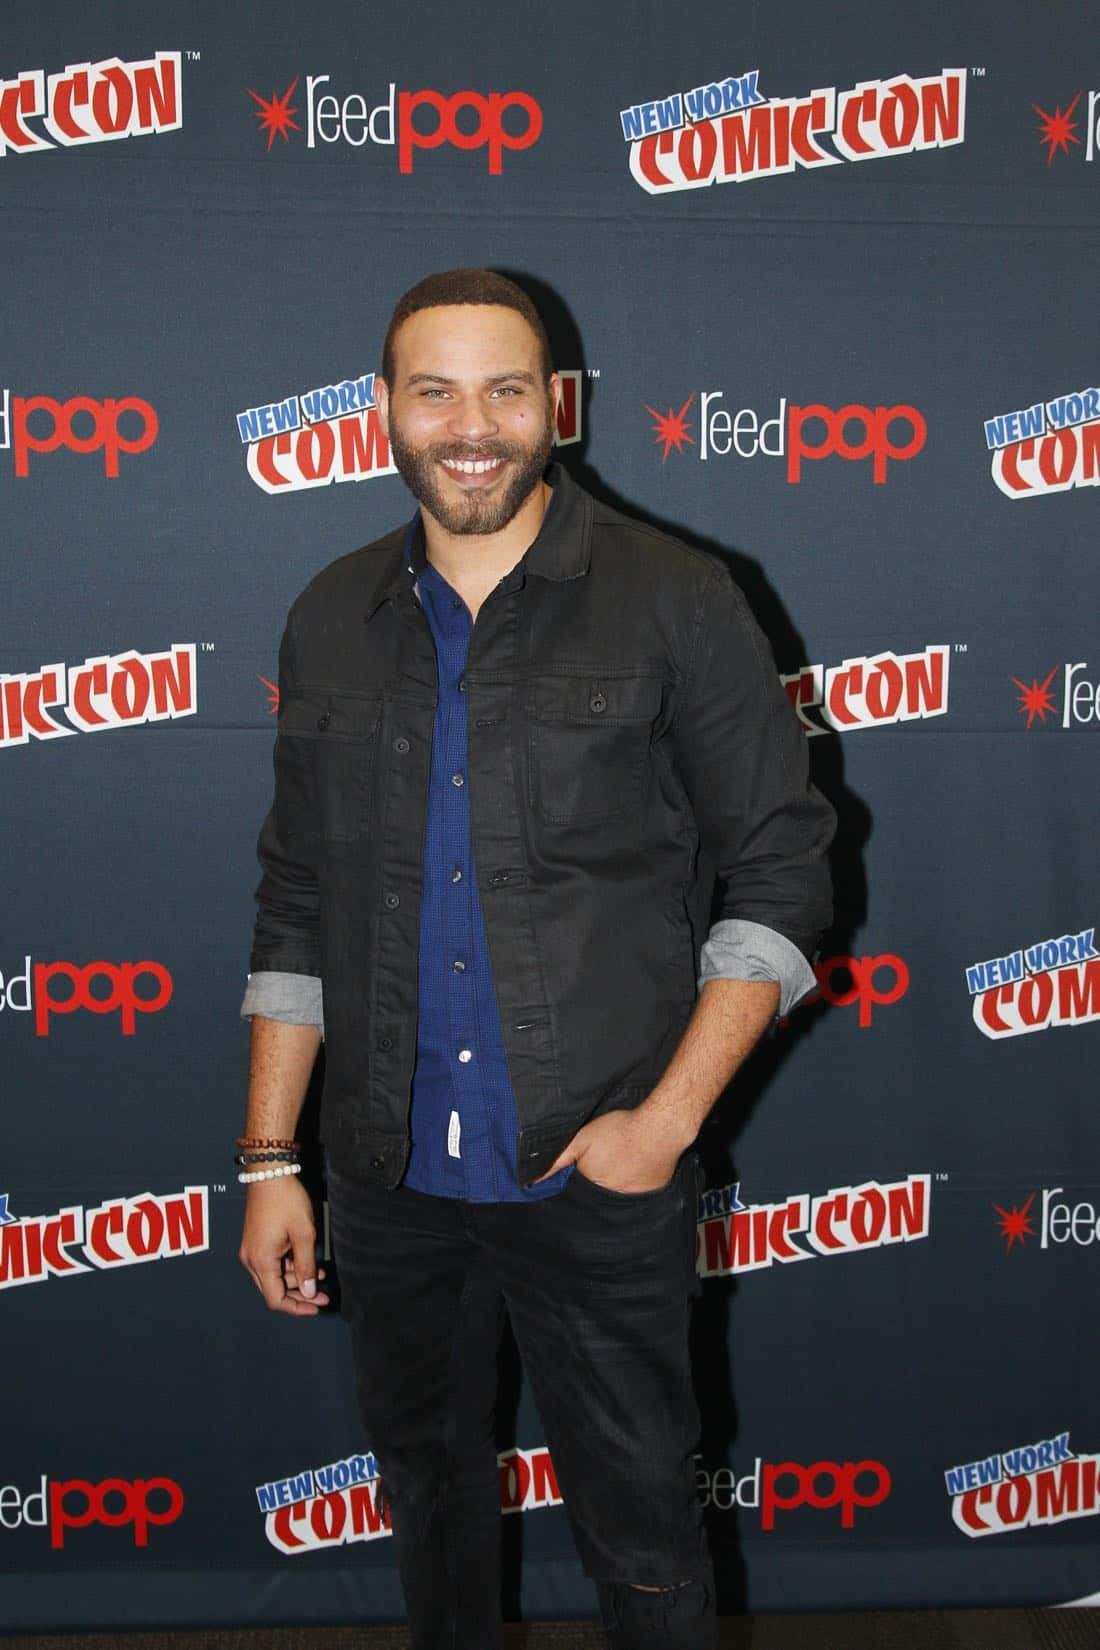 """NY COMIC-CON 2017 - SIREN - Freeform's genre programming was out in full force at this year's New York Comic Con on Saturday, October 7th with executive producers and cast from the hit series """"Shadowhunters,"""" """"Beyond,"""" and new original series """"Siren.""""  (Freeform/Lou Rocco) IAN VERDUN"""